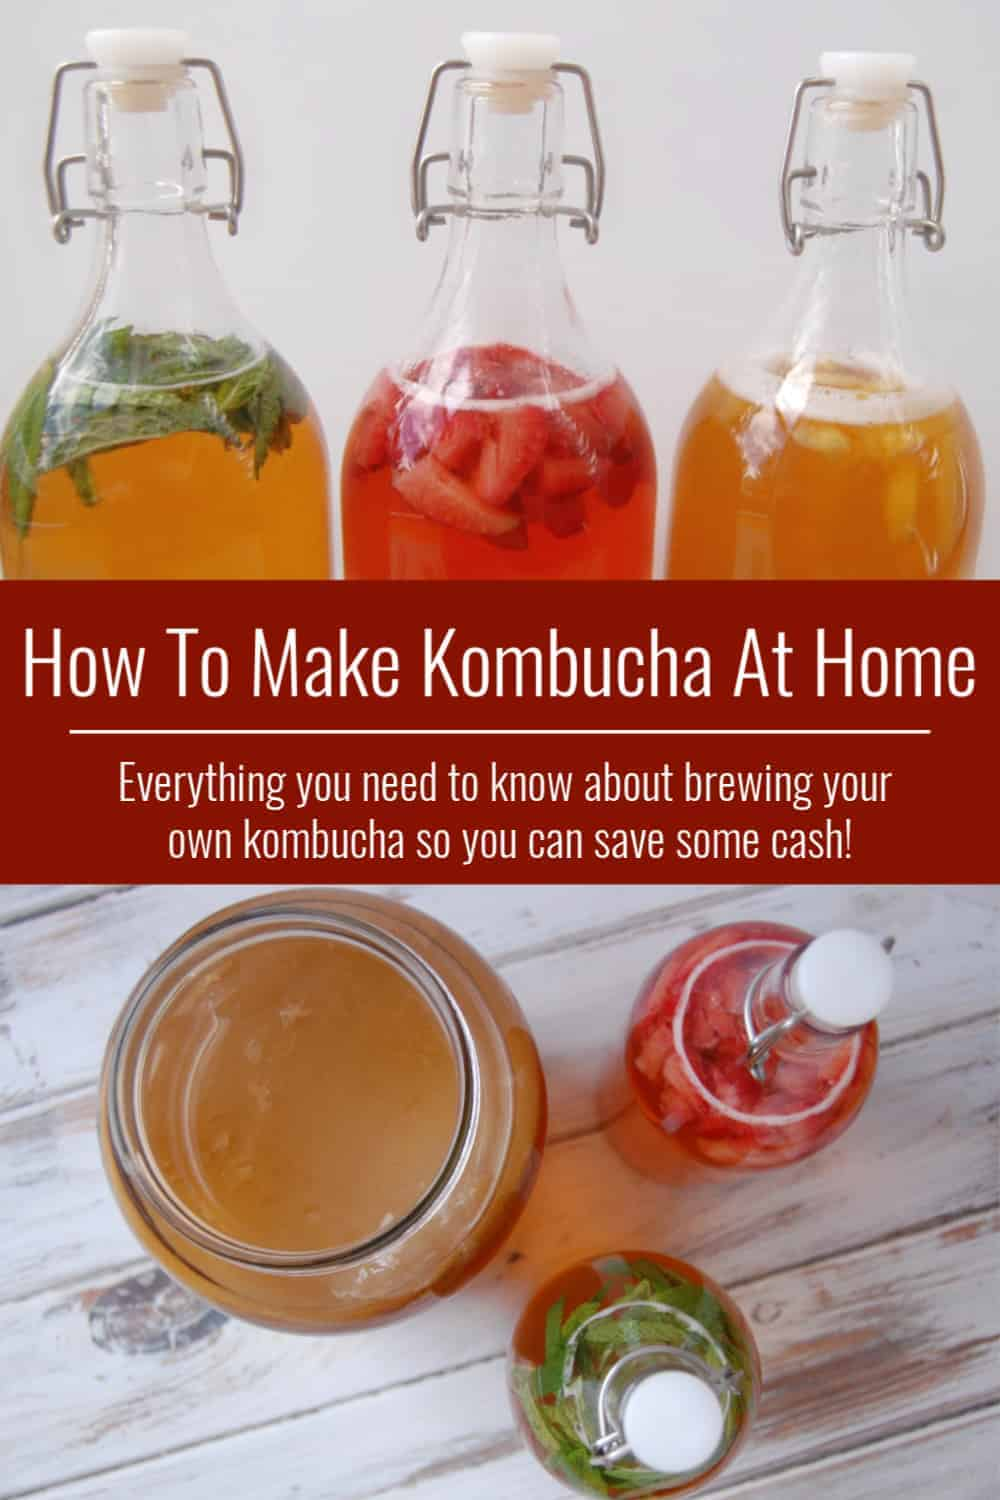 How To Make Kombucha At Home